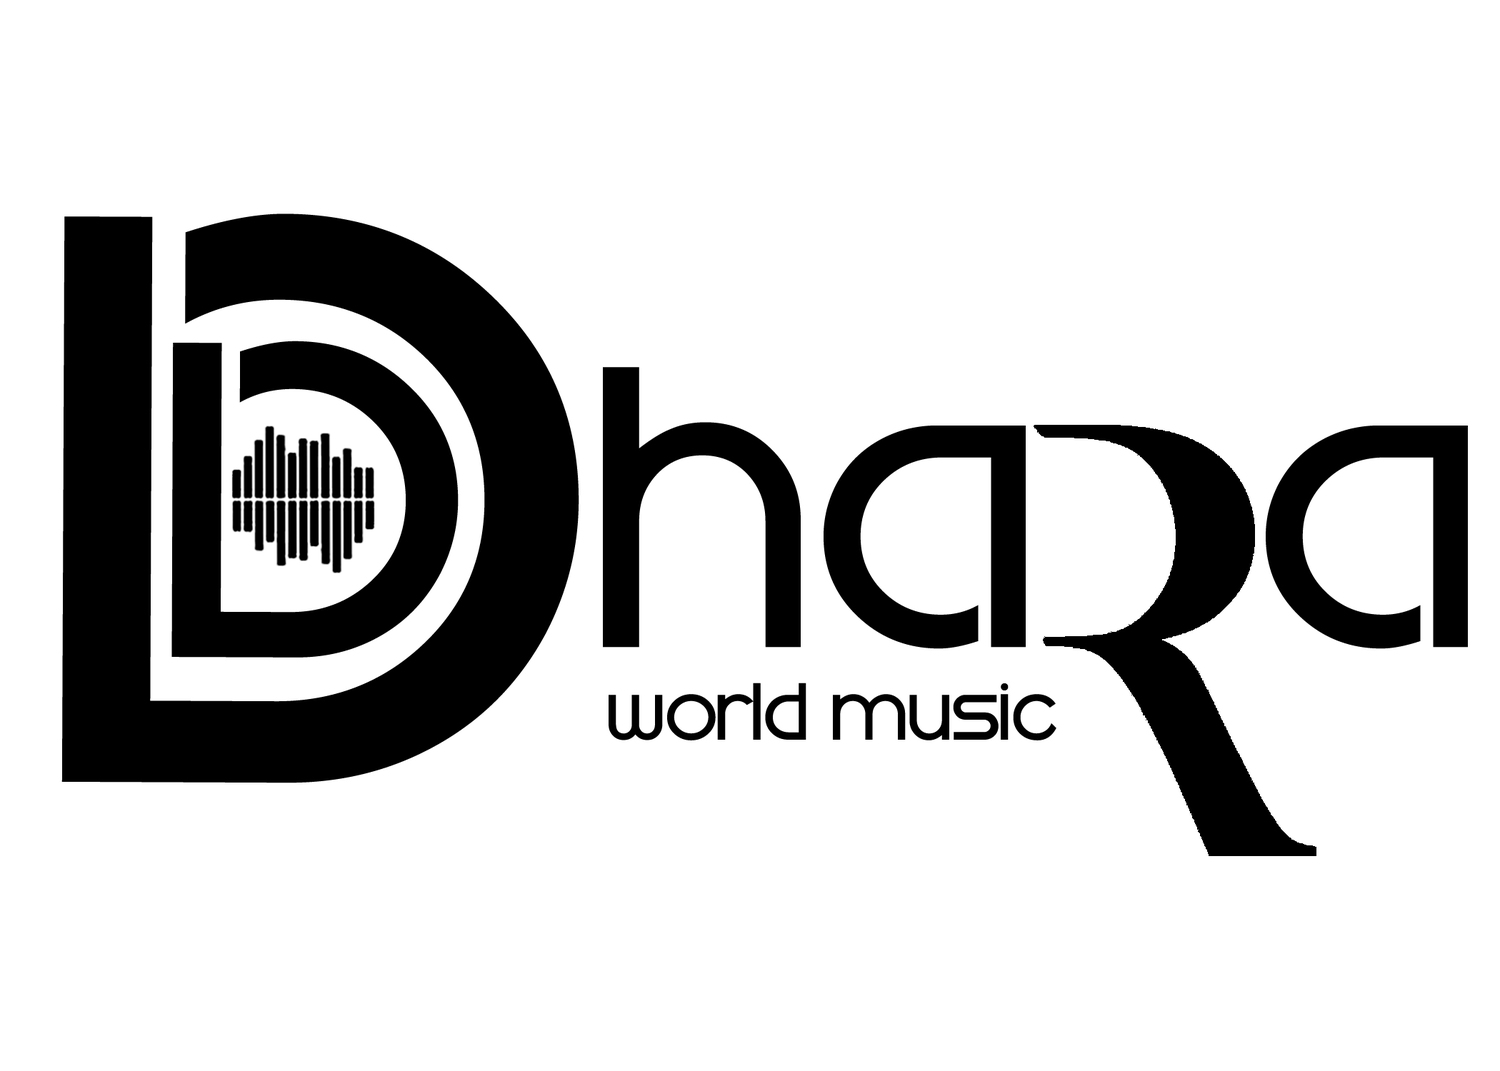 Dhara World Music